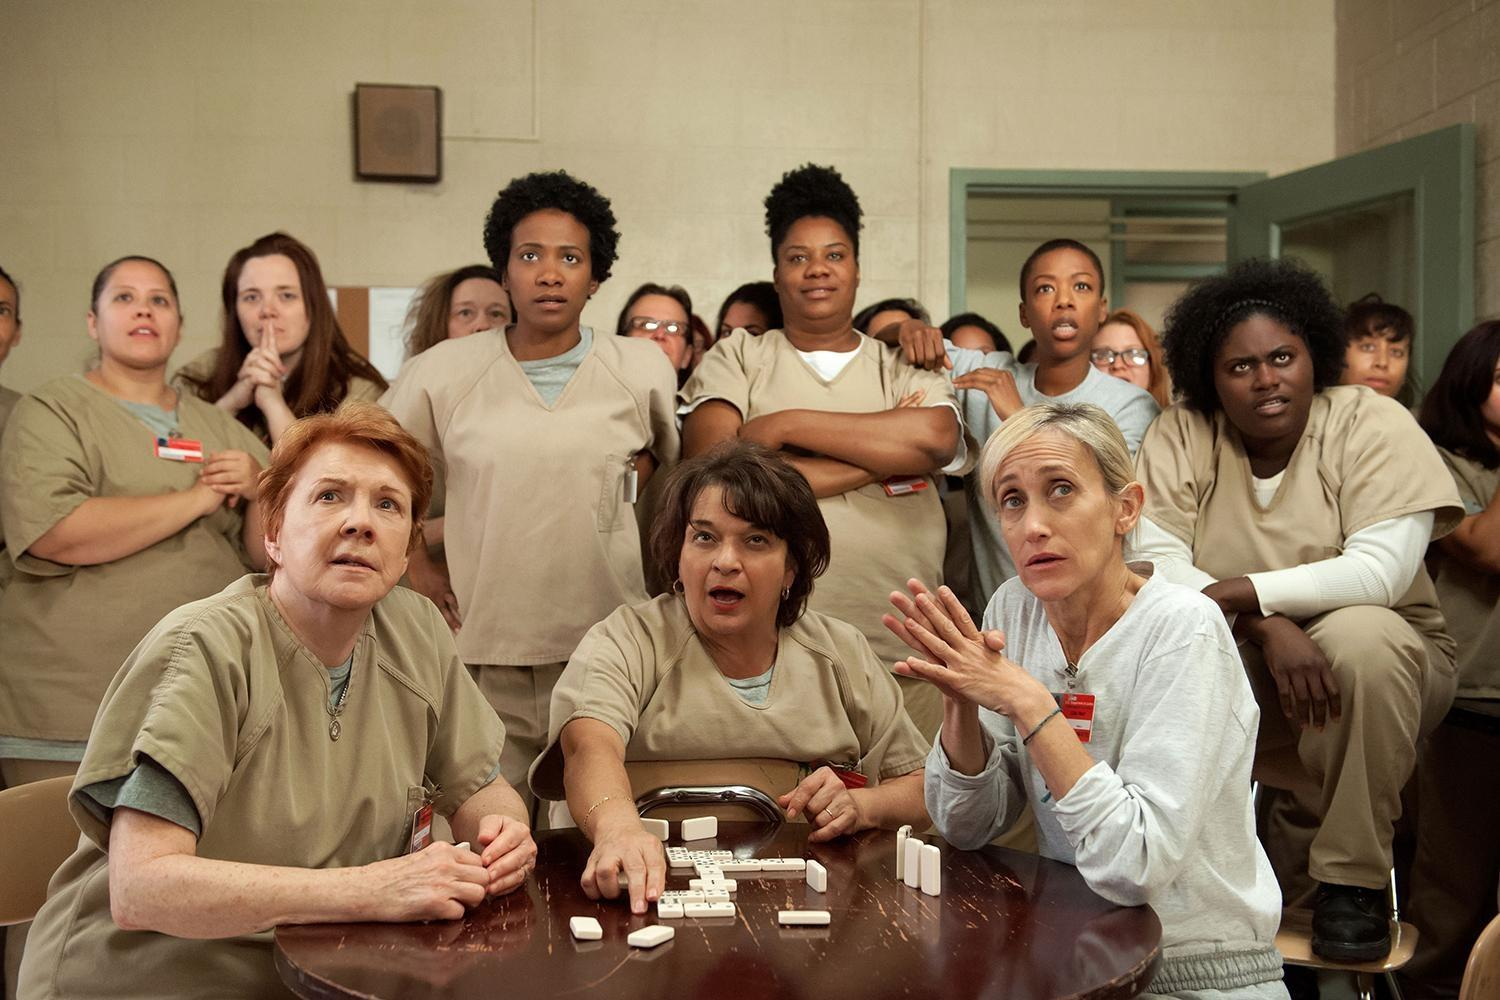 Netflix orders up a triple batch of Orange is the New Black